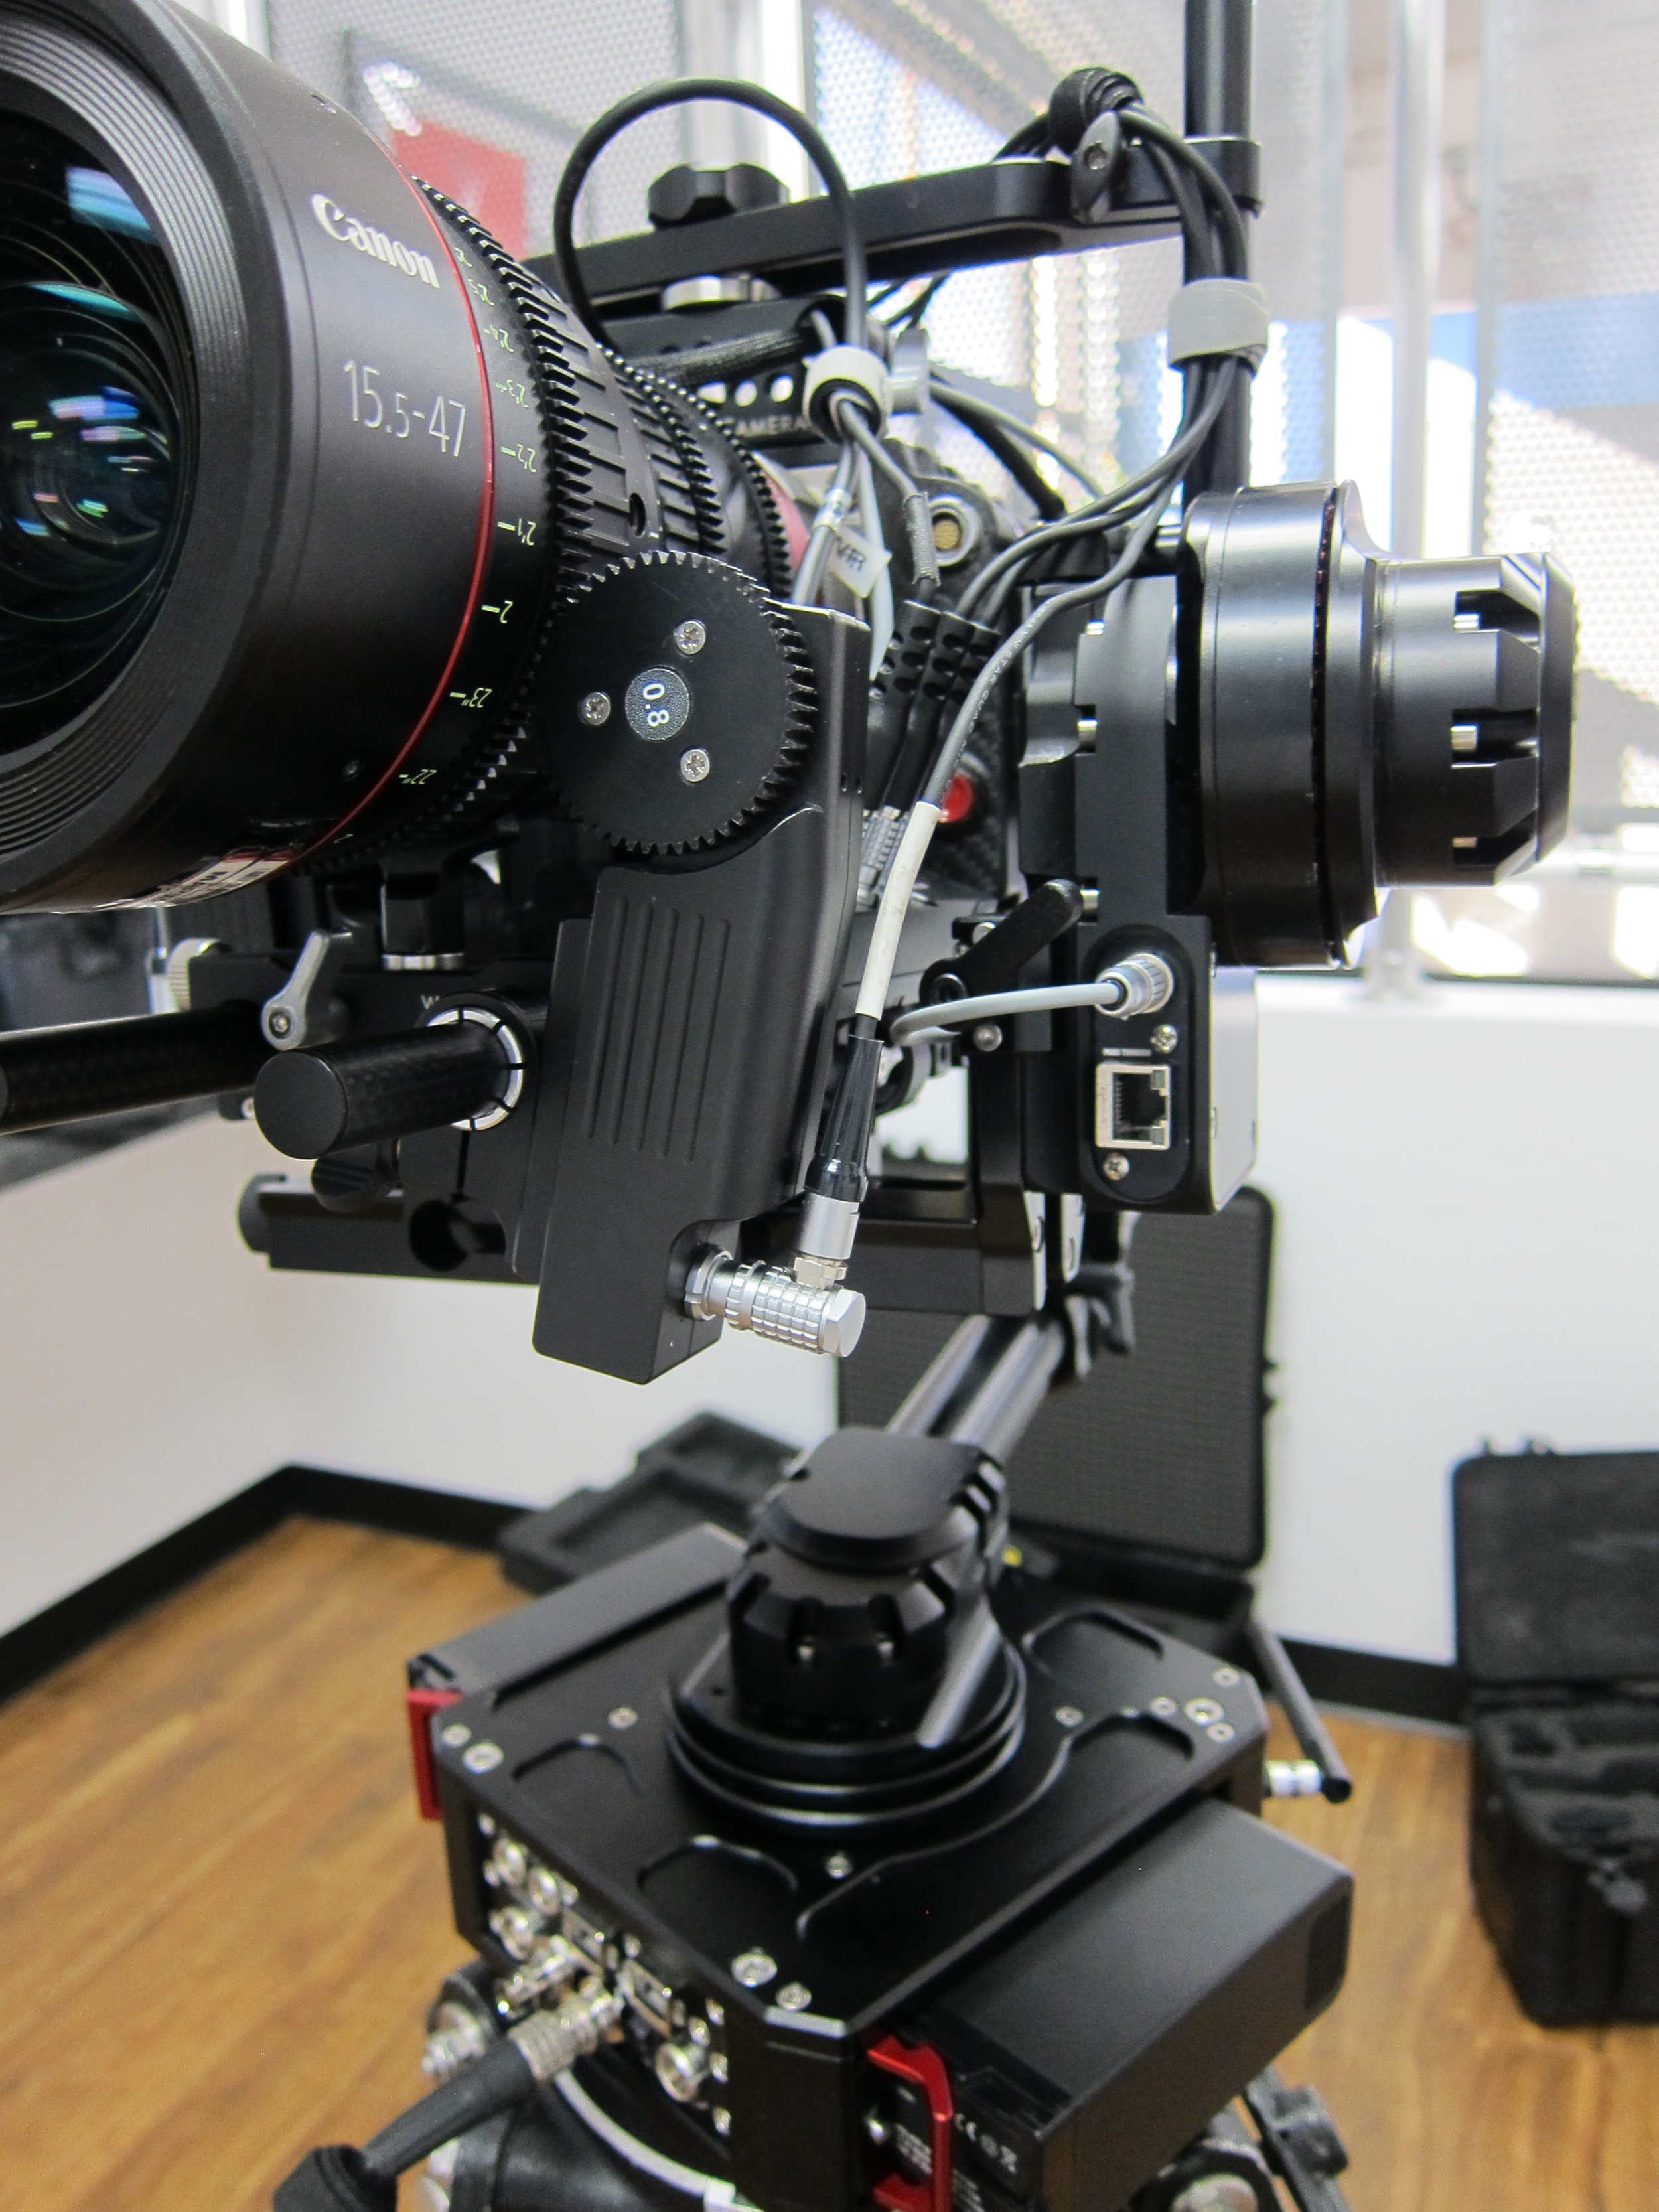 RT Focus Motor with Canon 15.5-47mm + RED Dragon & NEWTON